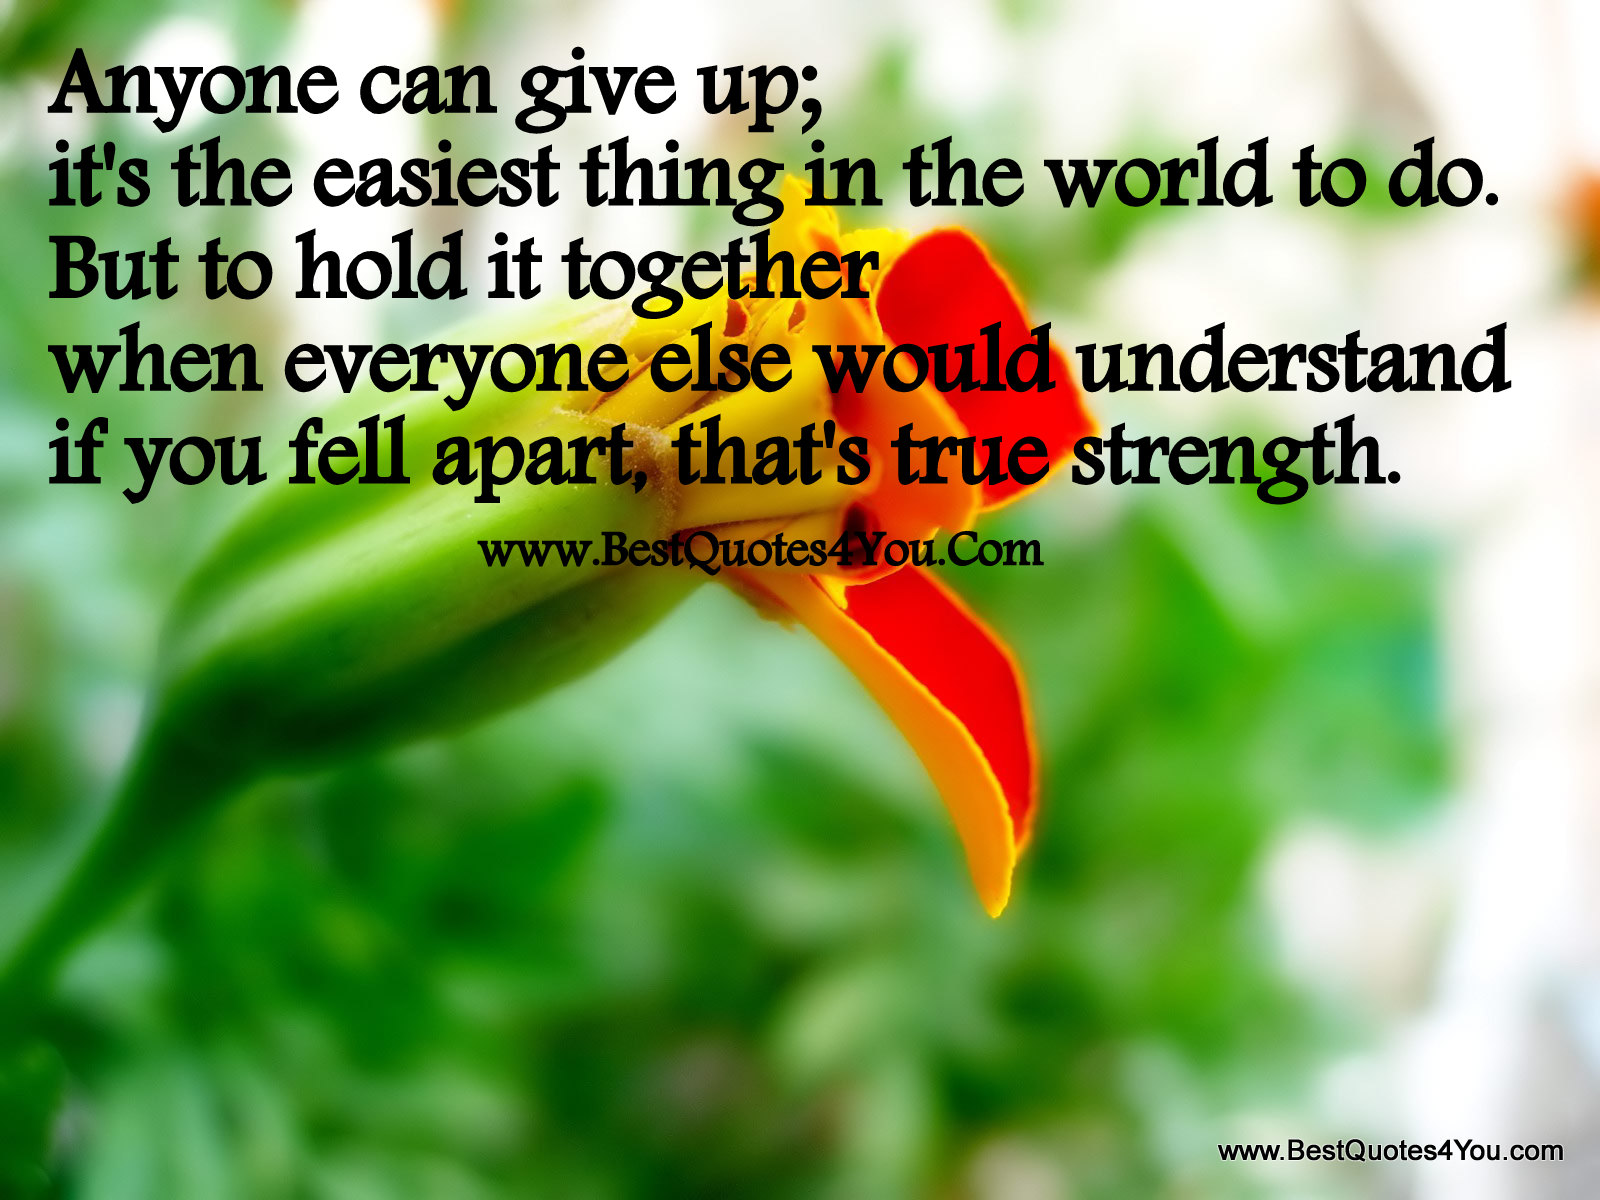 Anyone Can Give Up; It's The Easiest Thing In The World To Do. But To Hold It Together When Everyone Else Would Understand If You Fell Apart That's True Strength